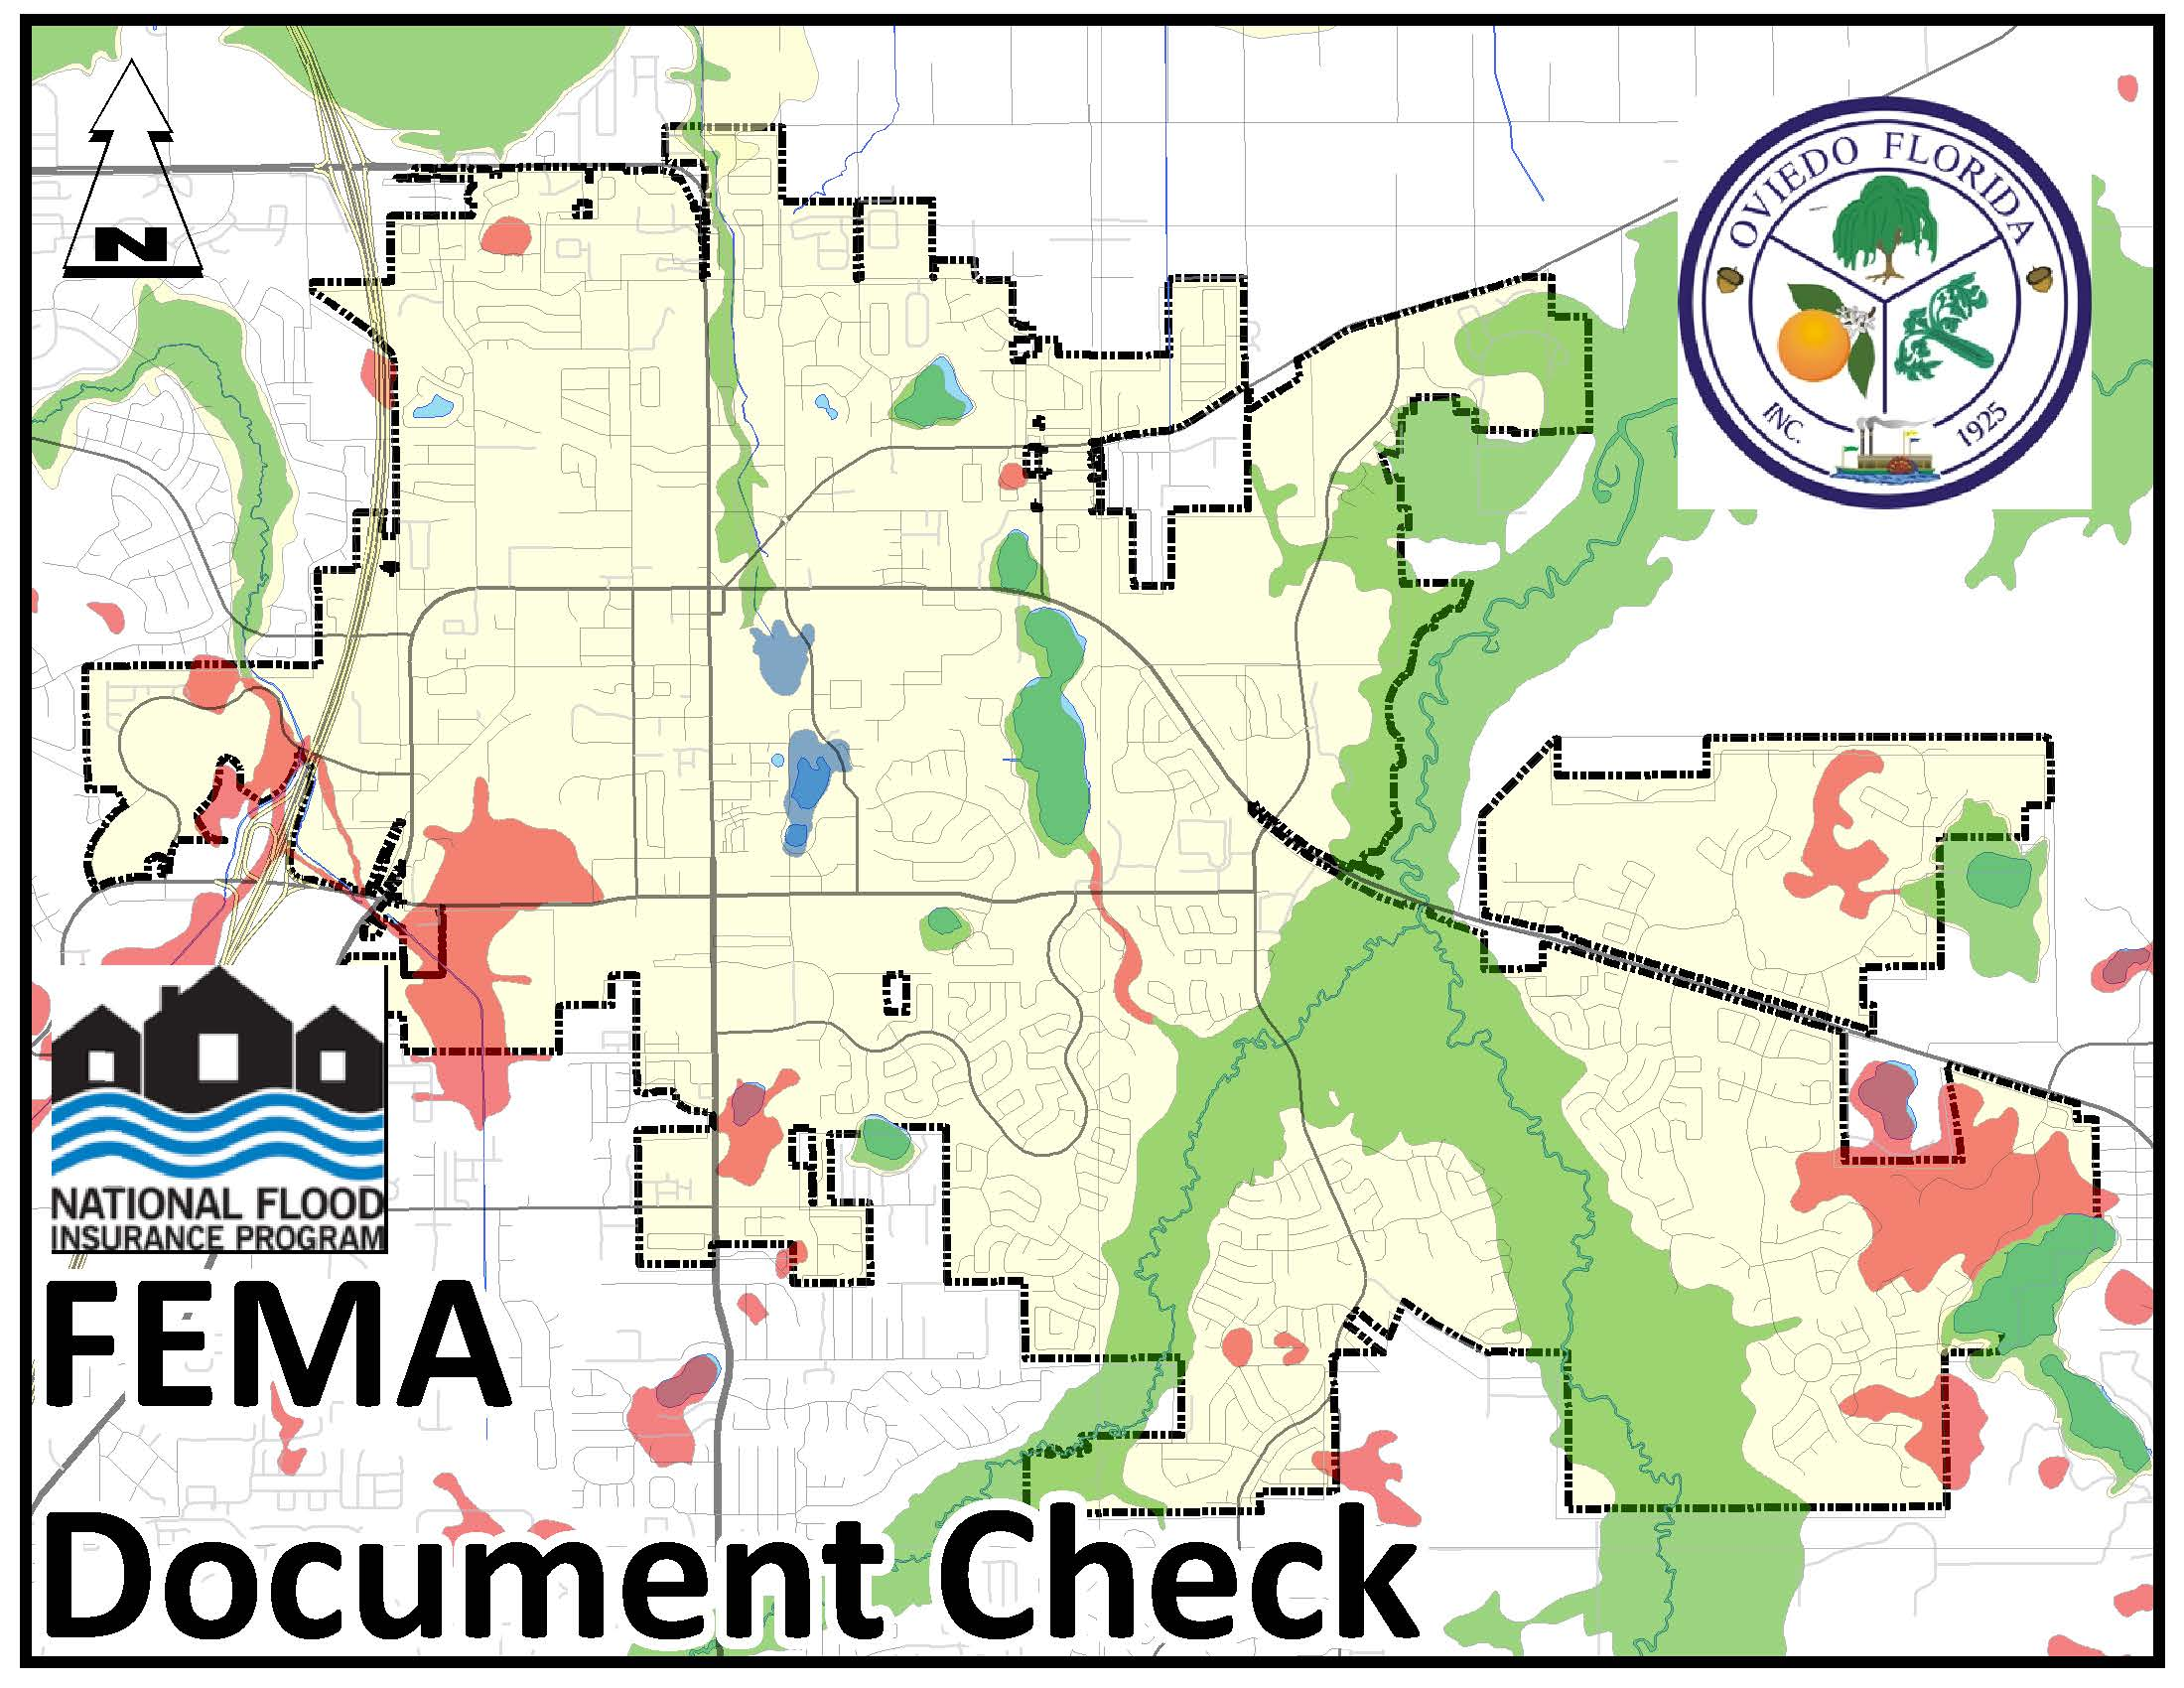 Map search for FEMA documents related to a property